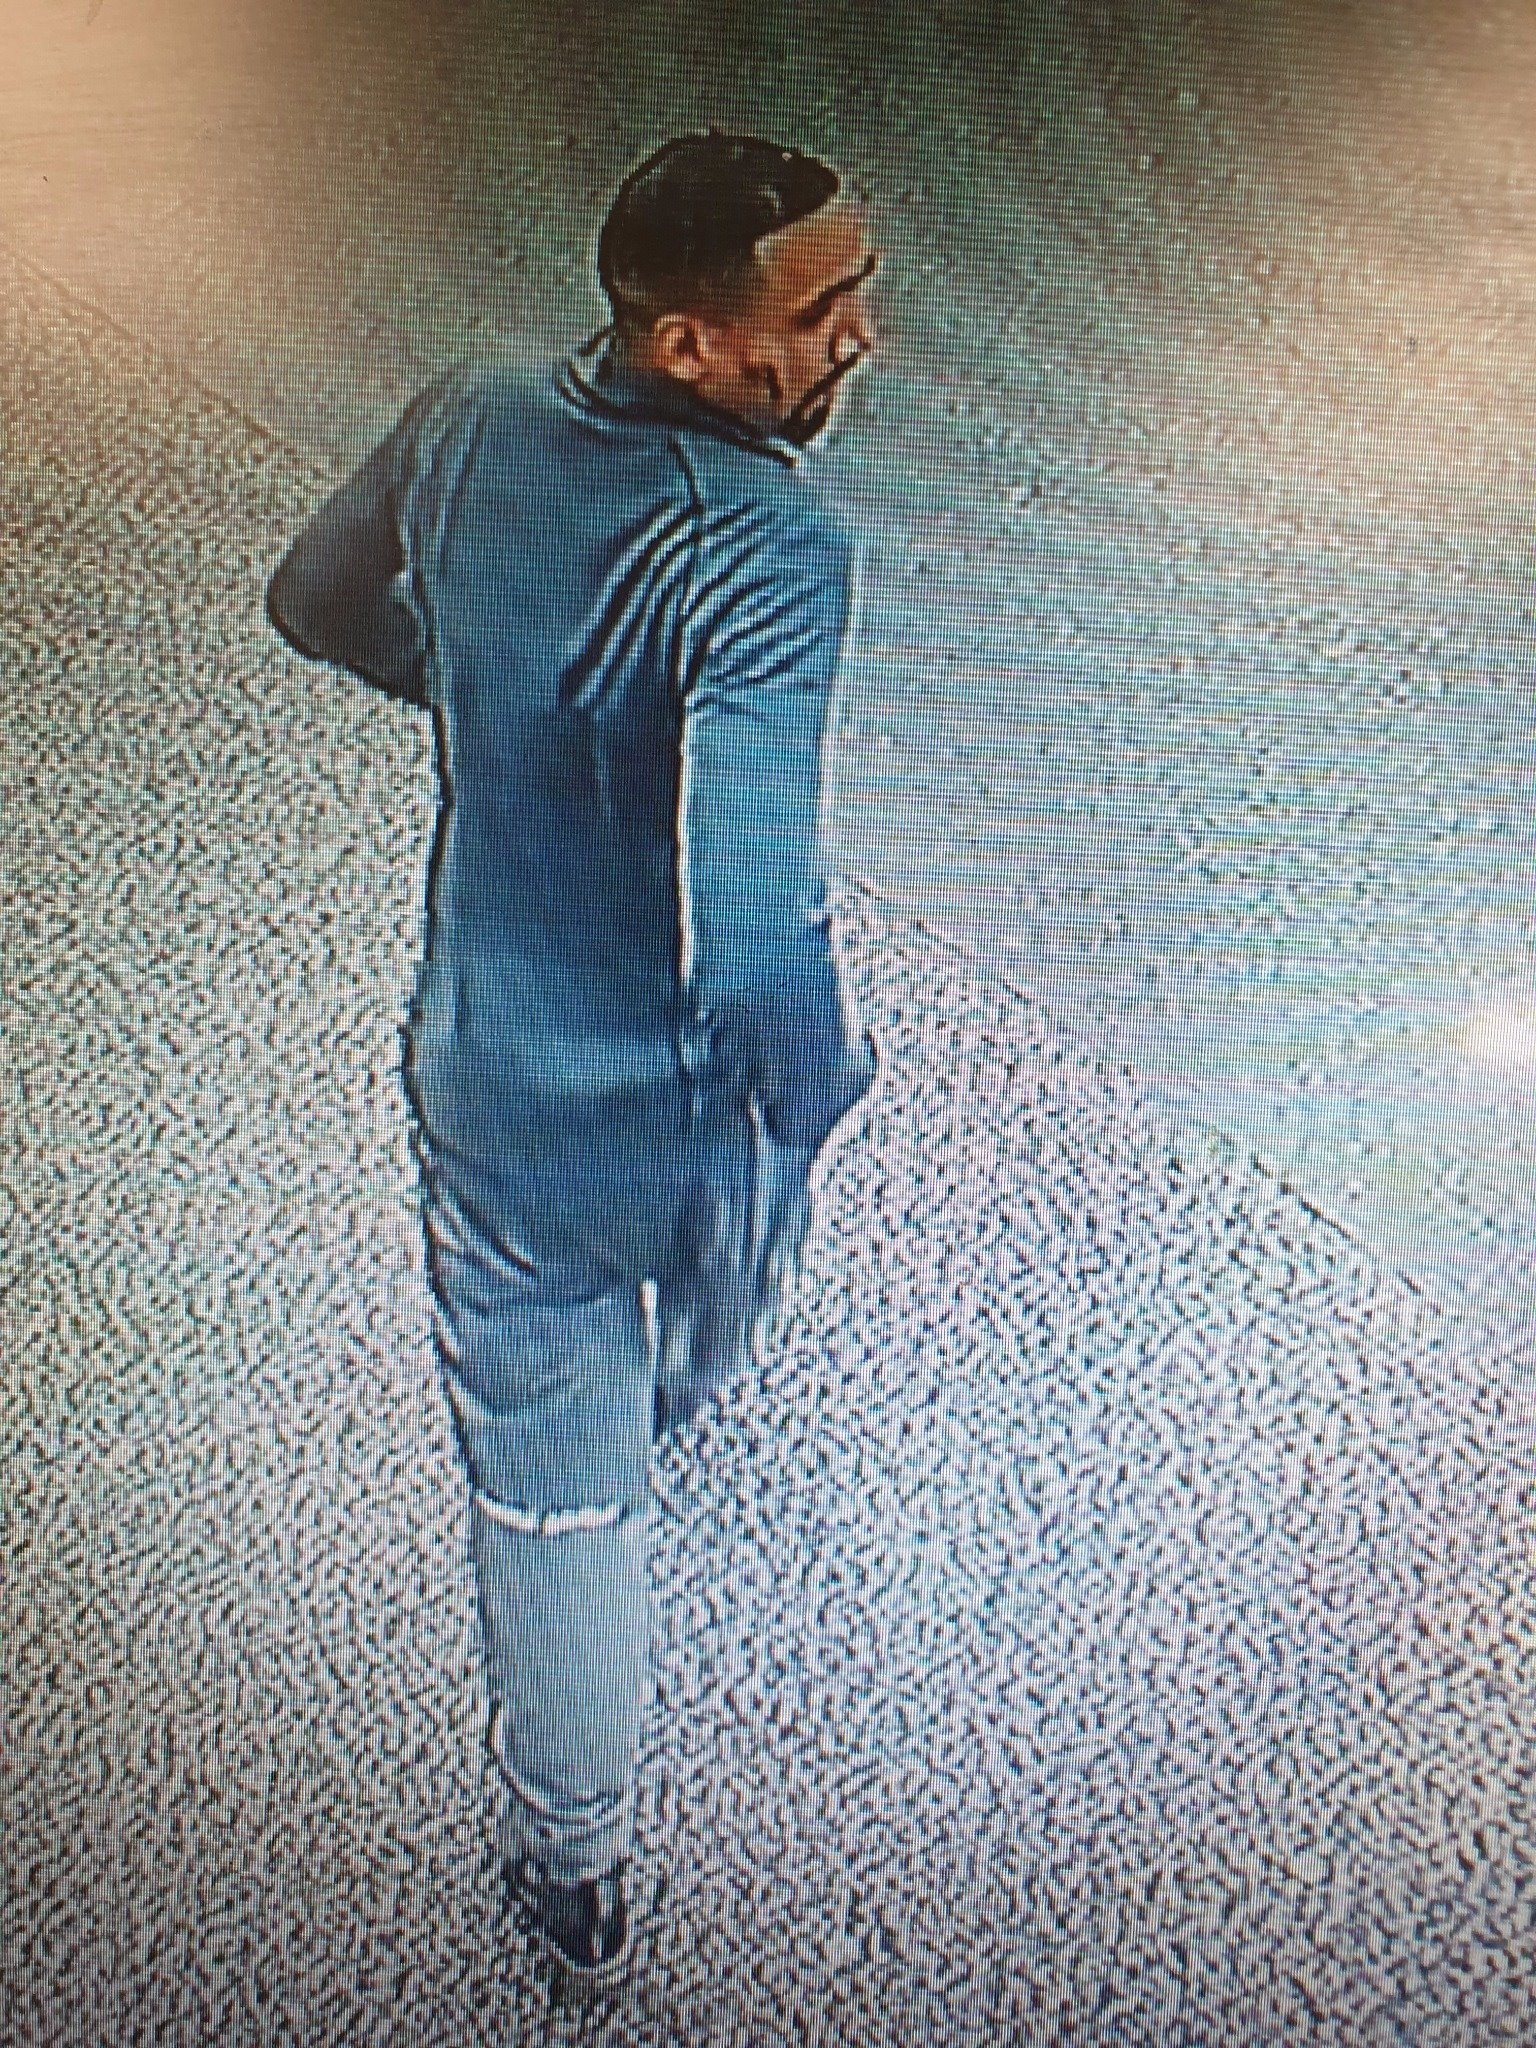 , Appeal made to identify male in relation to affray in Skelmersdale, Skem News - The Top Source for Skelmersdale News